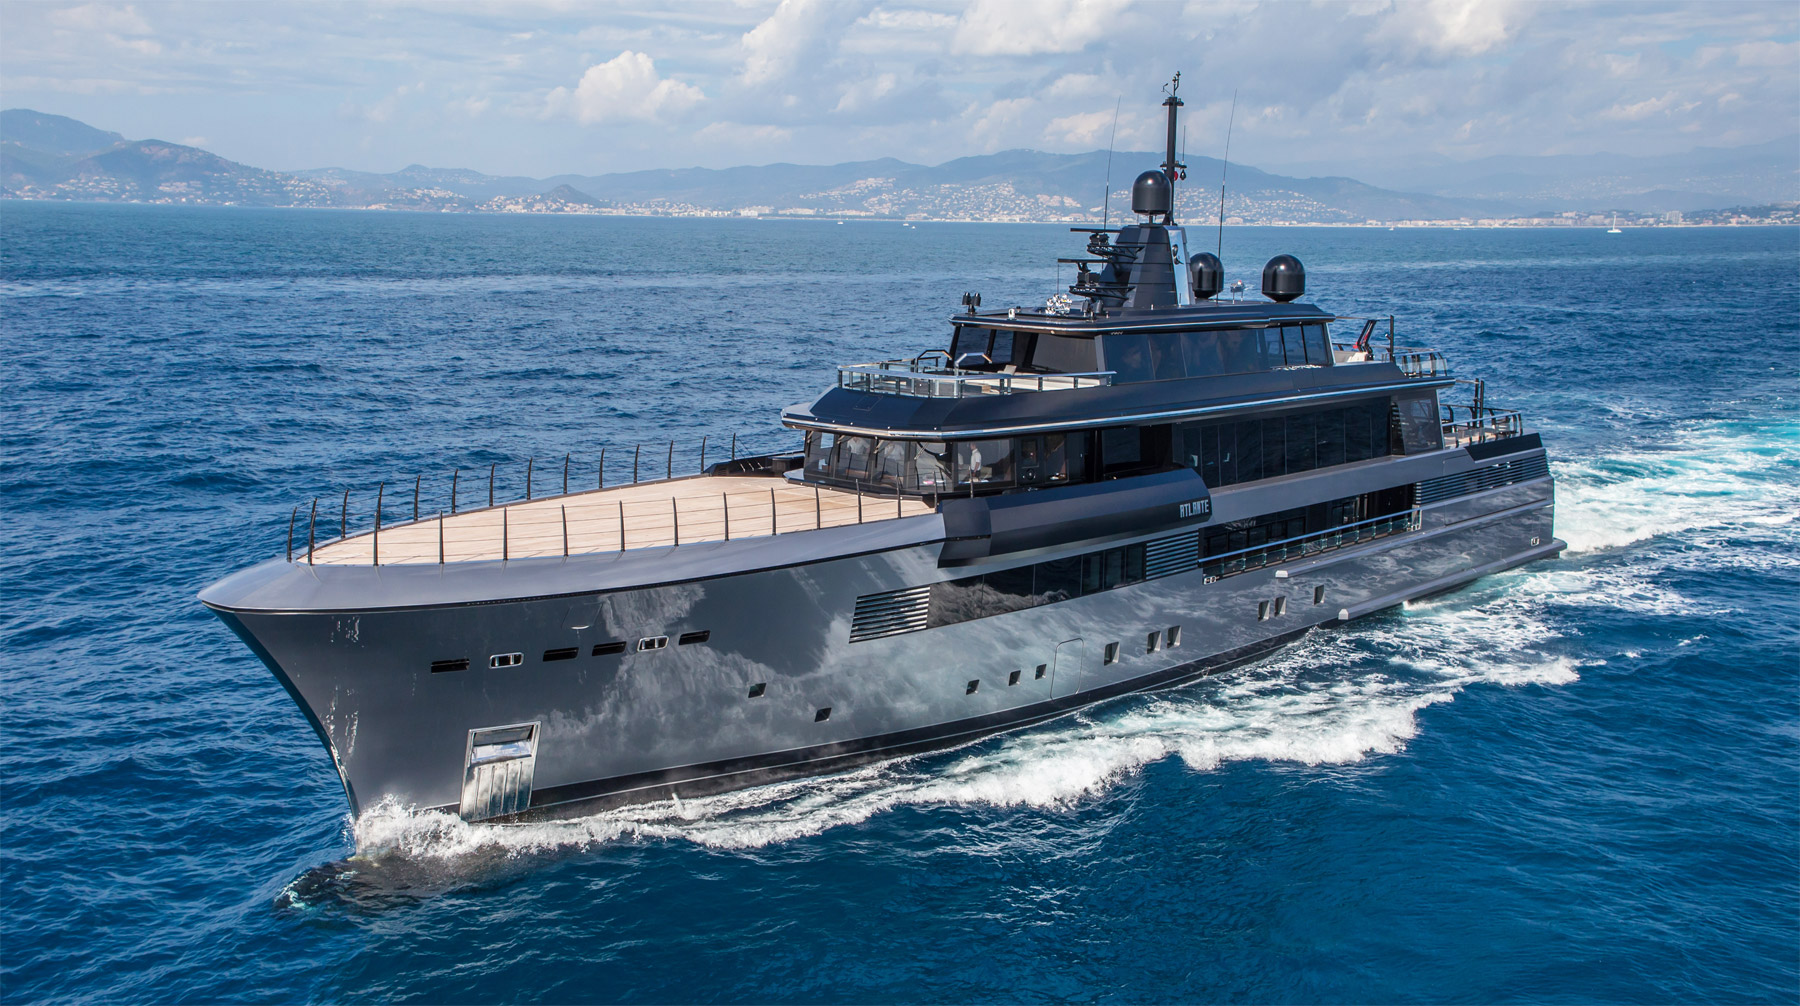 CRN M/Y Atlante Wins 'Best Power Design Award 2016' In Fort Lauderdale